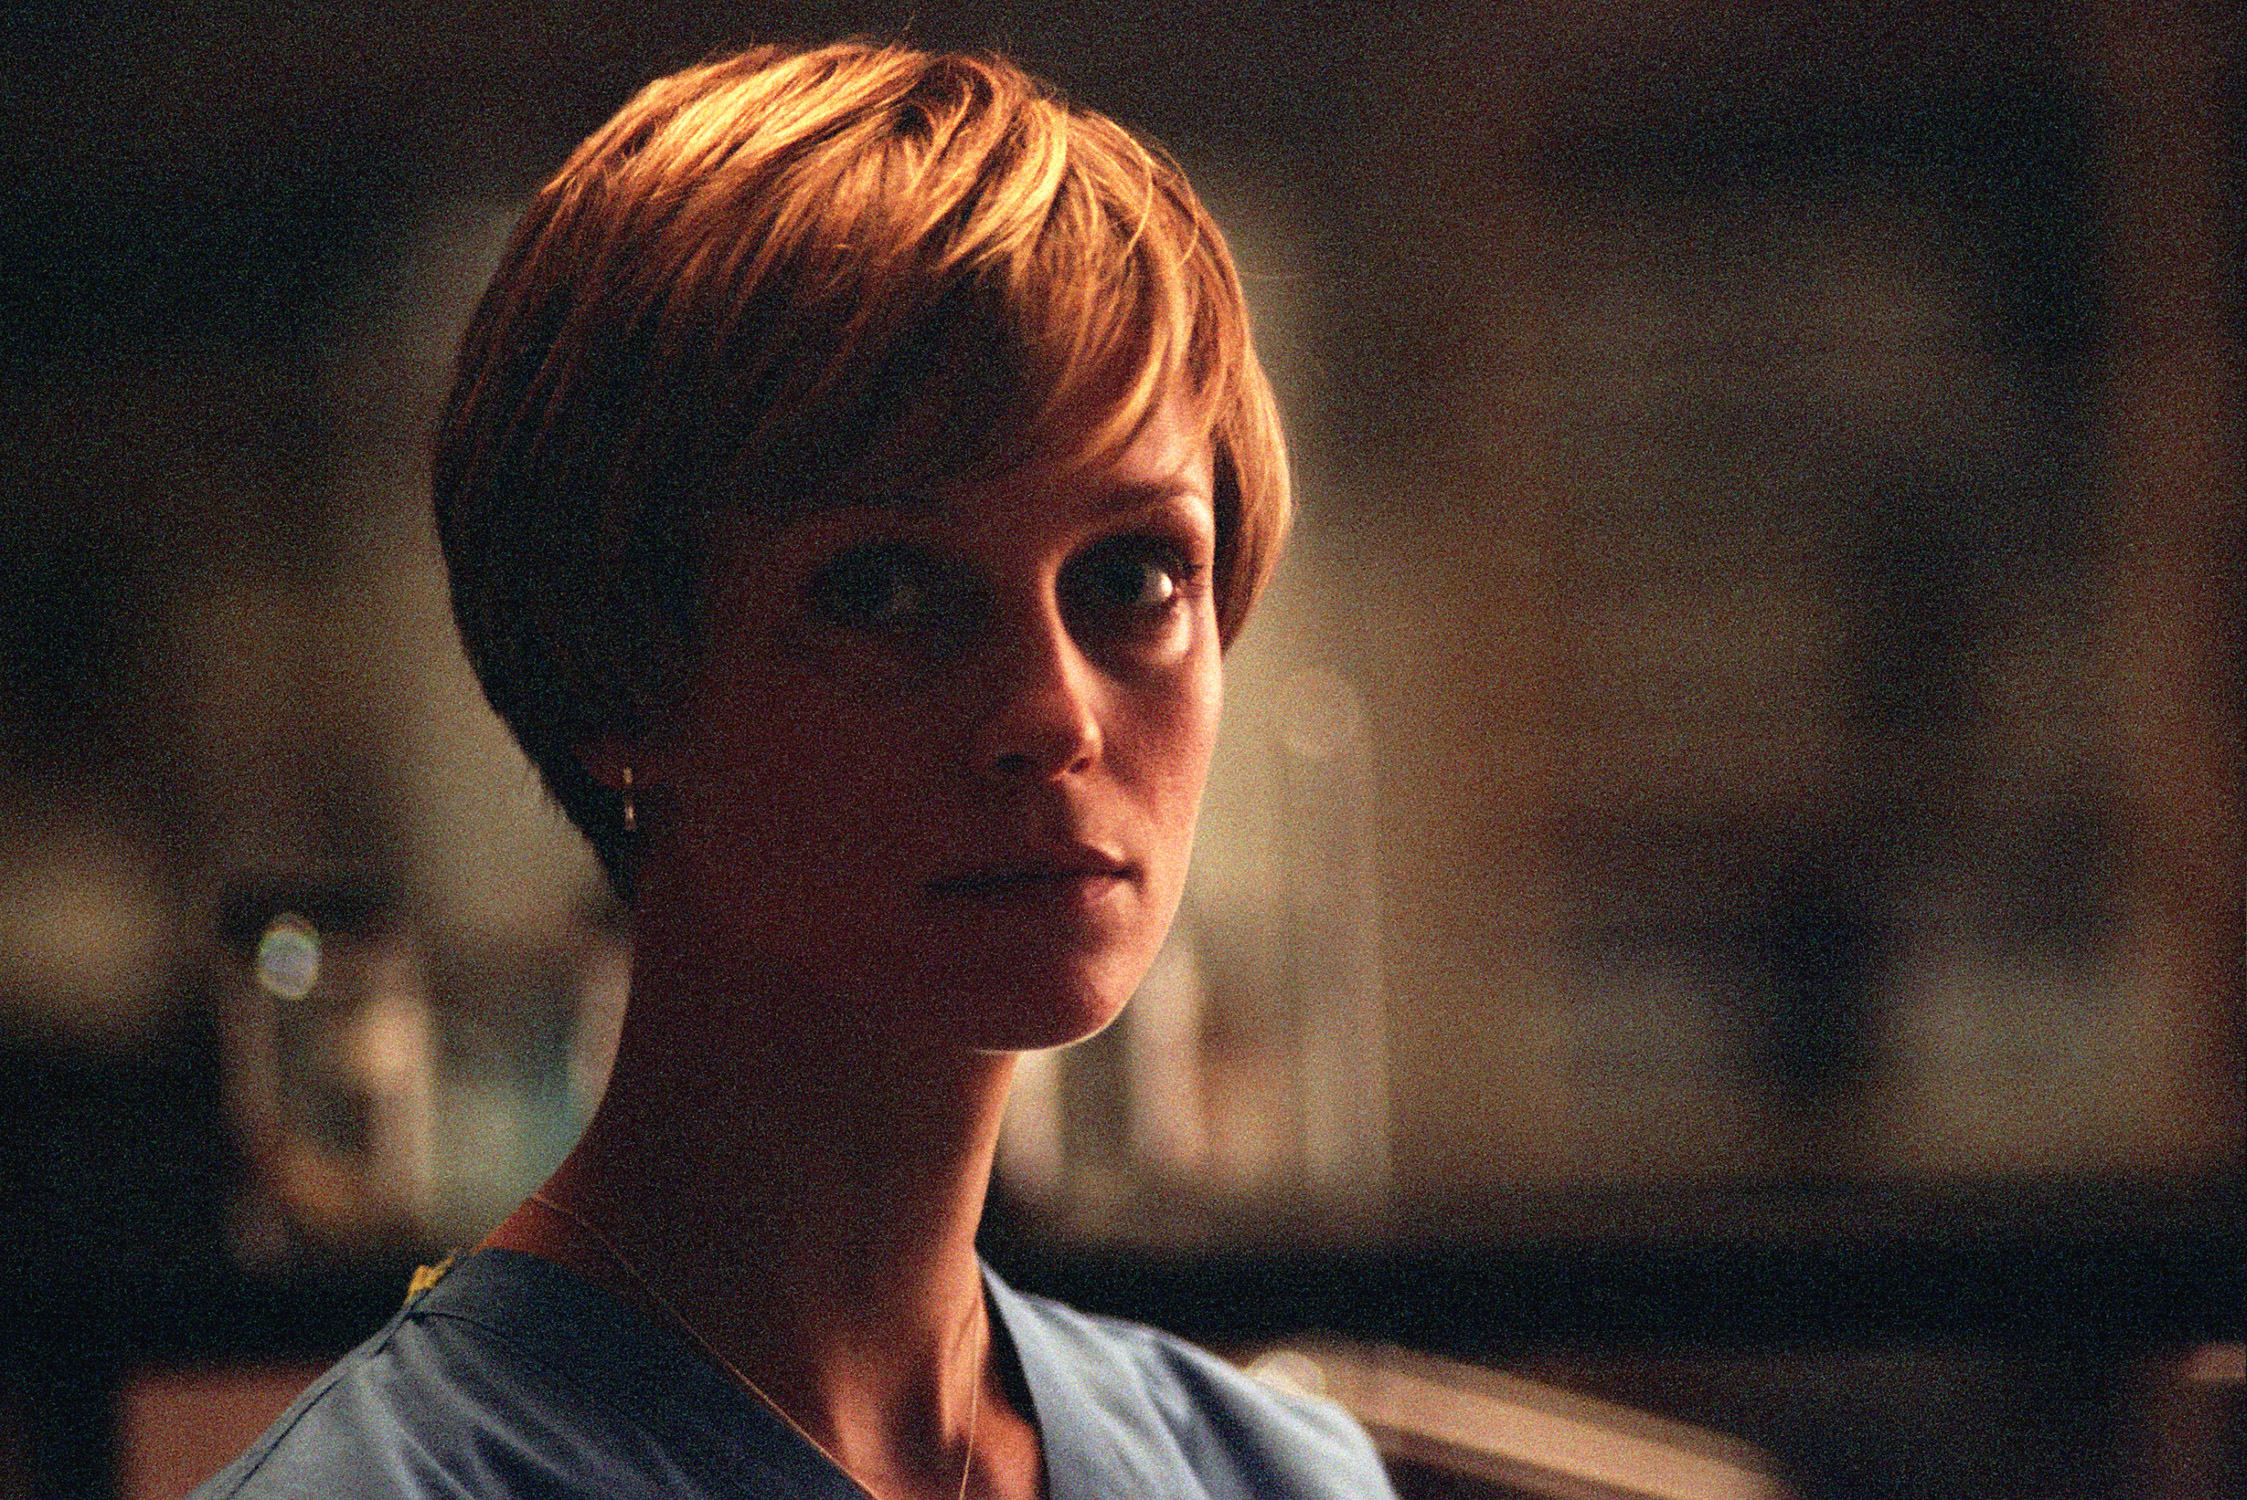 Laura Regan in Hollow Man II (2006)